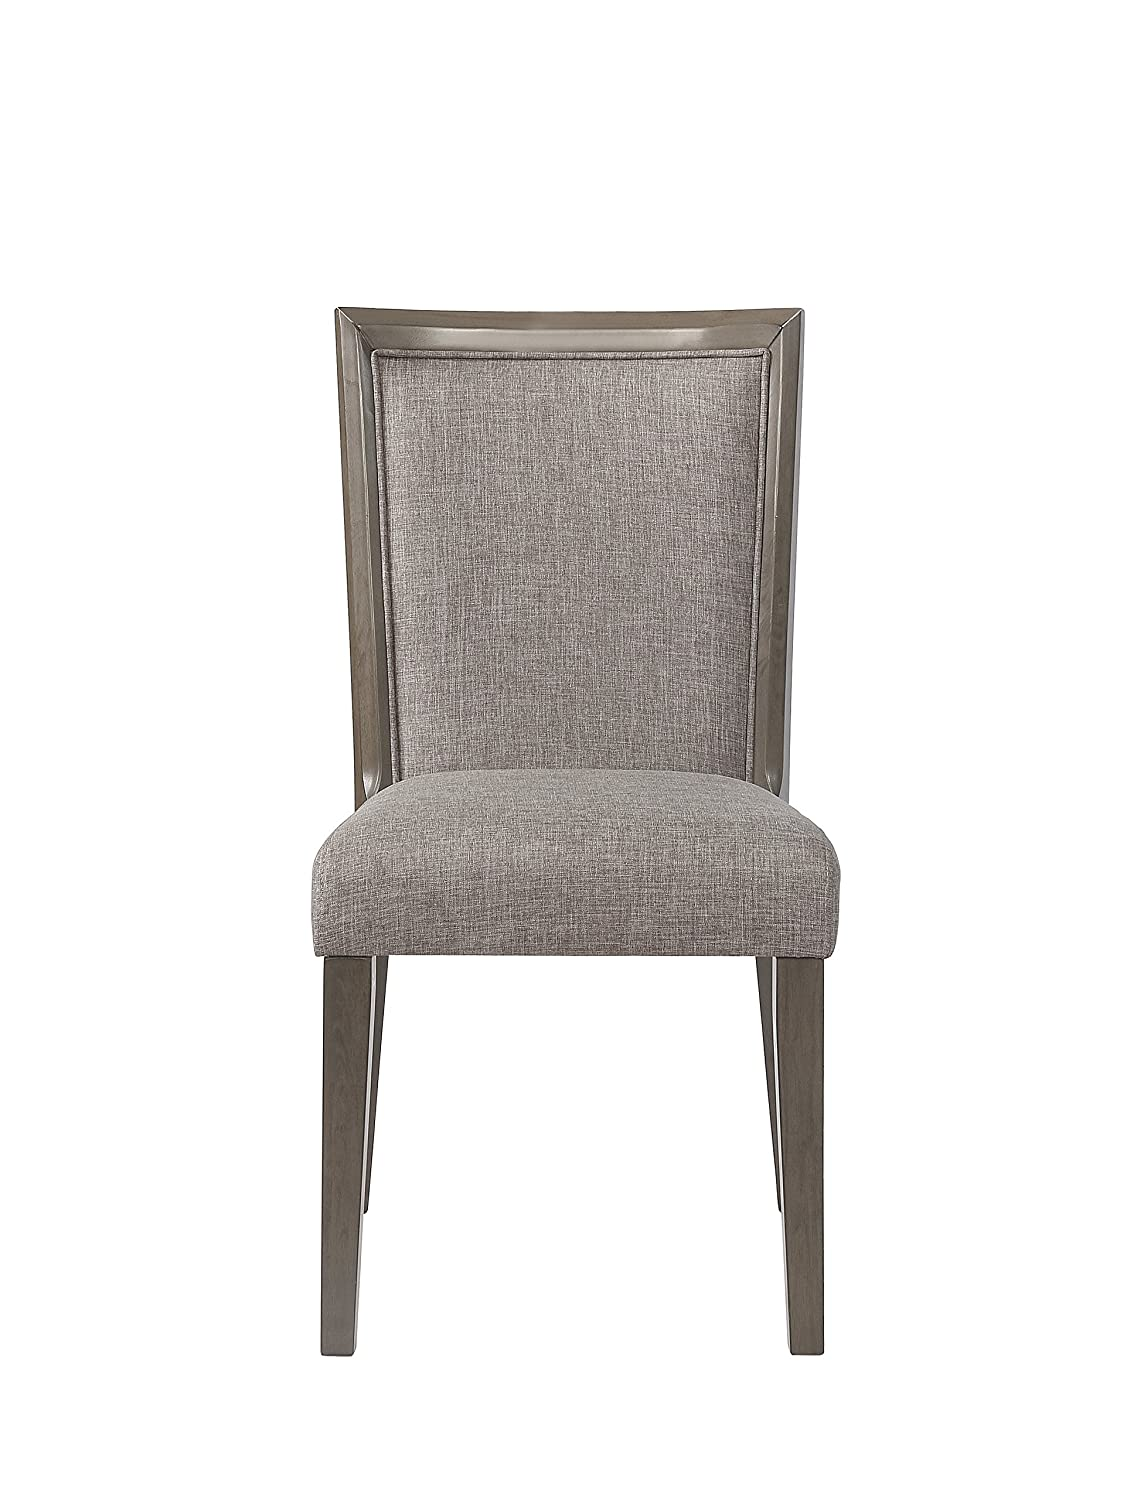 Delicieux Amazon.com   Powell PAMZN1492 Fordham Chair, Espresso   Chairs